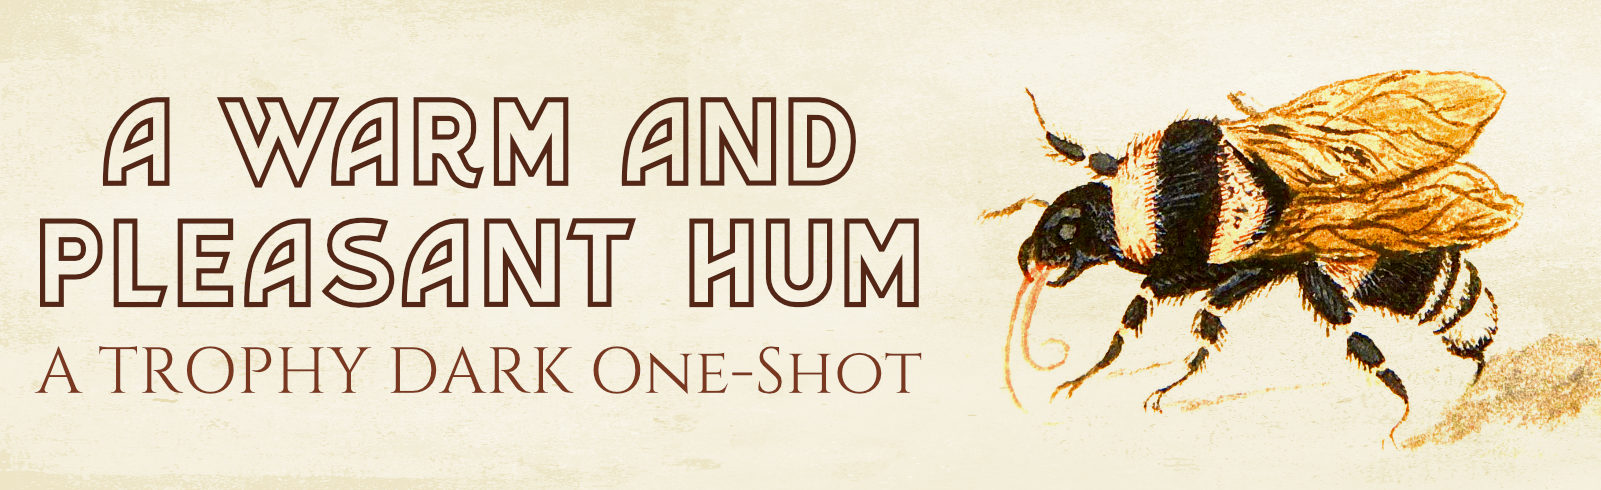 A Warm and Pleasant Hum: A One-Shot for Trophy Dark